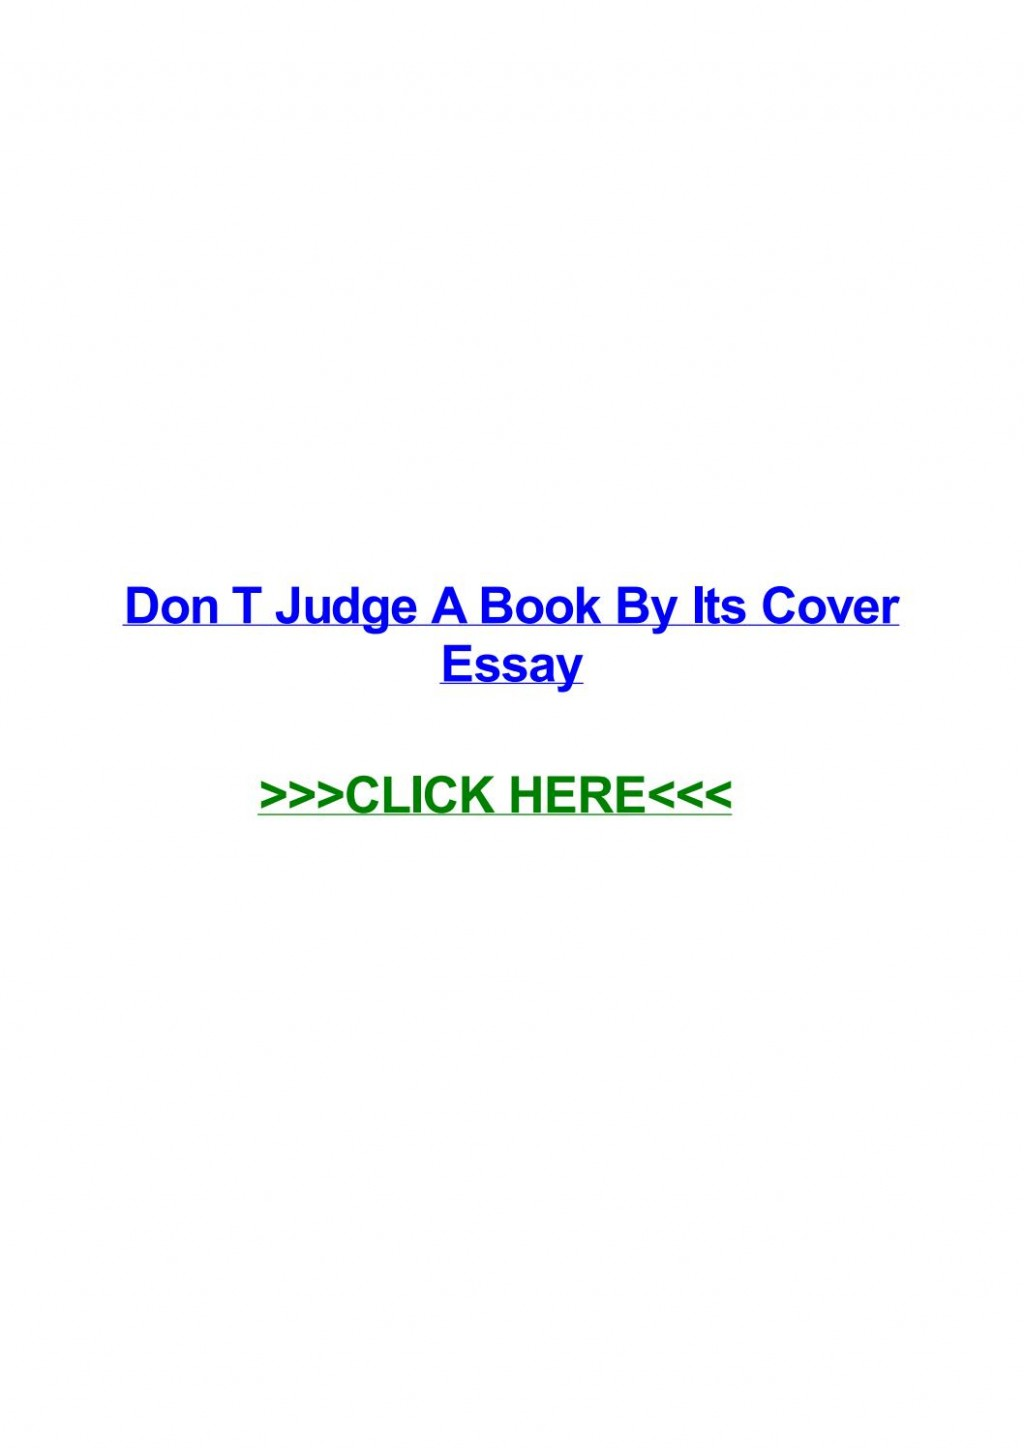 006 Don T Judge Book By Its Cover Essay Page 1 Formidable A Don't English Never Examples Large